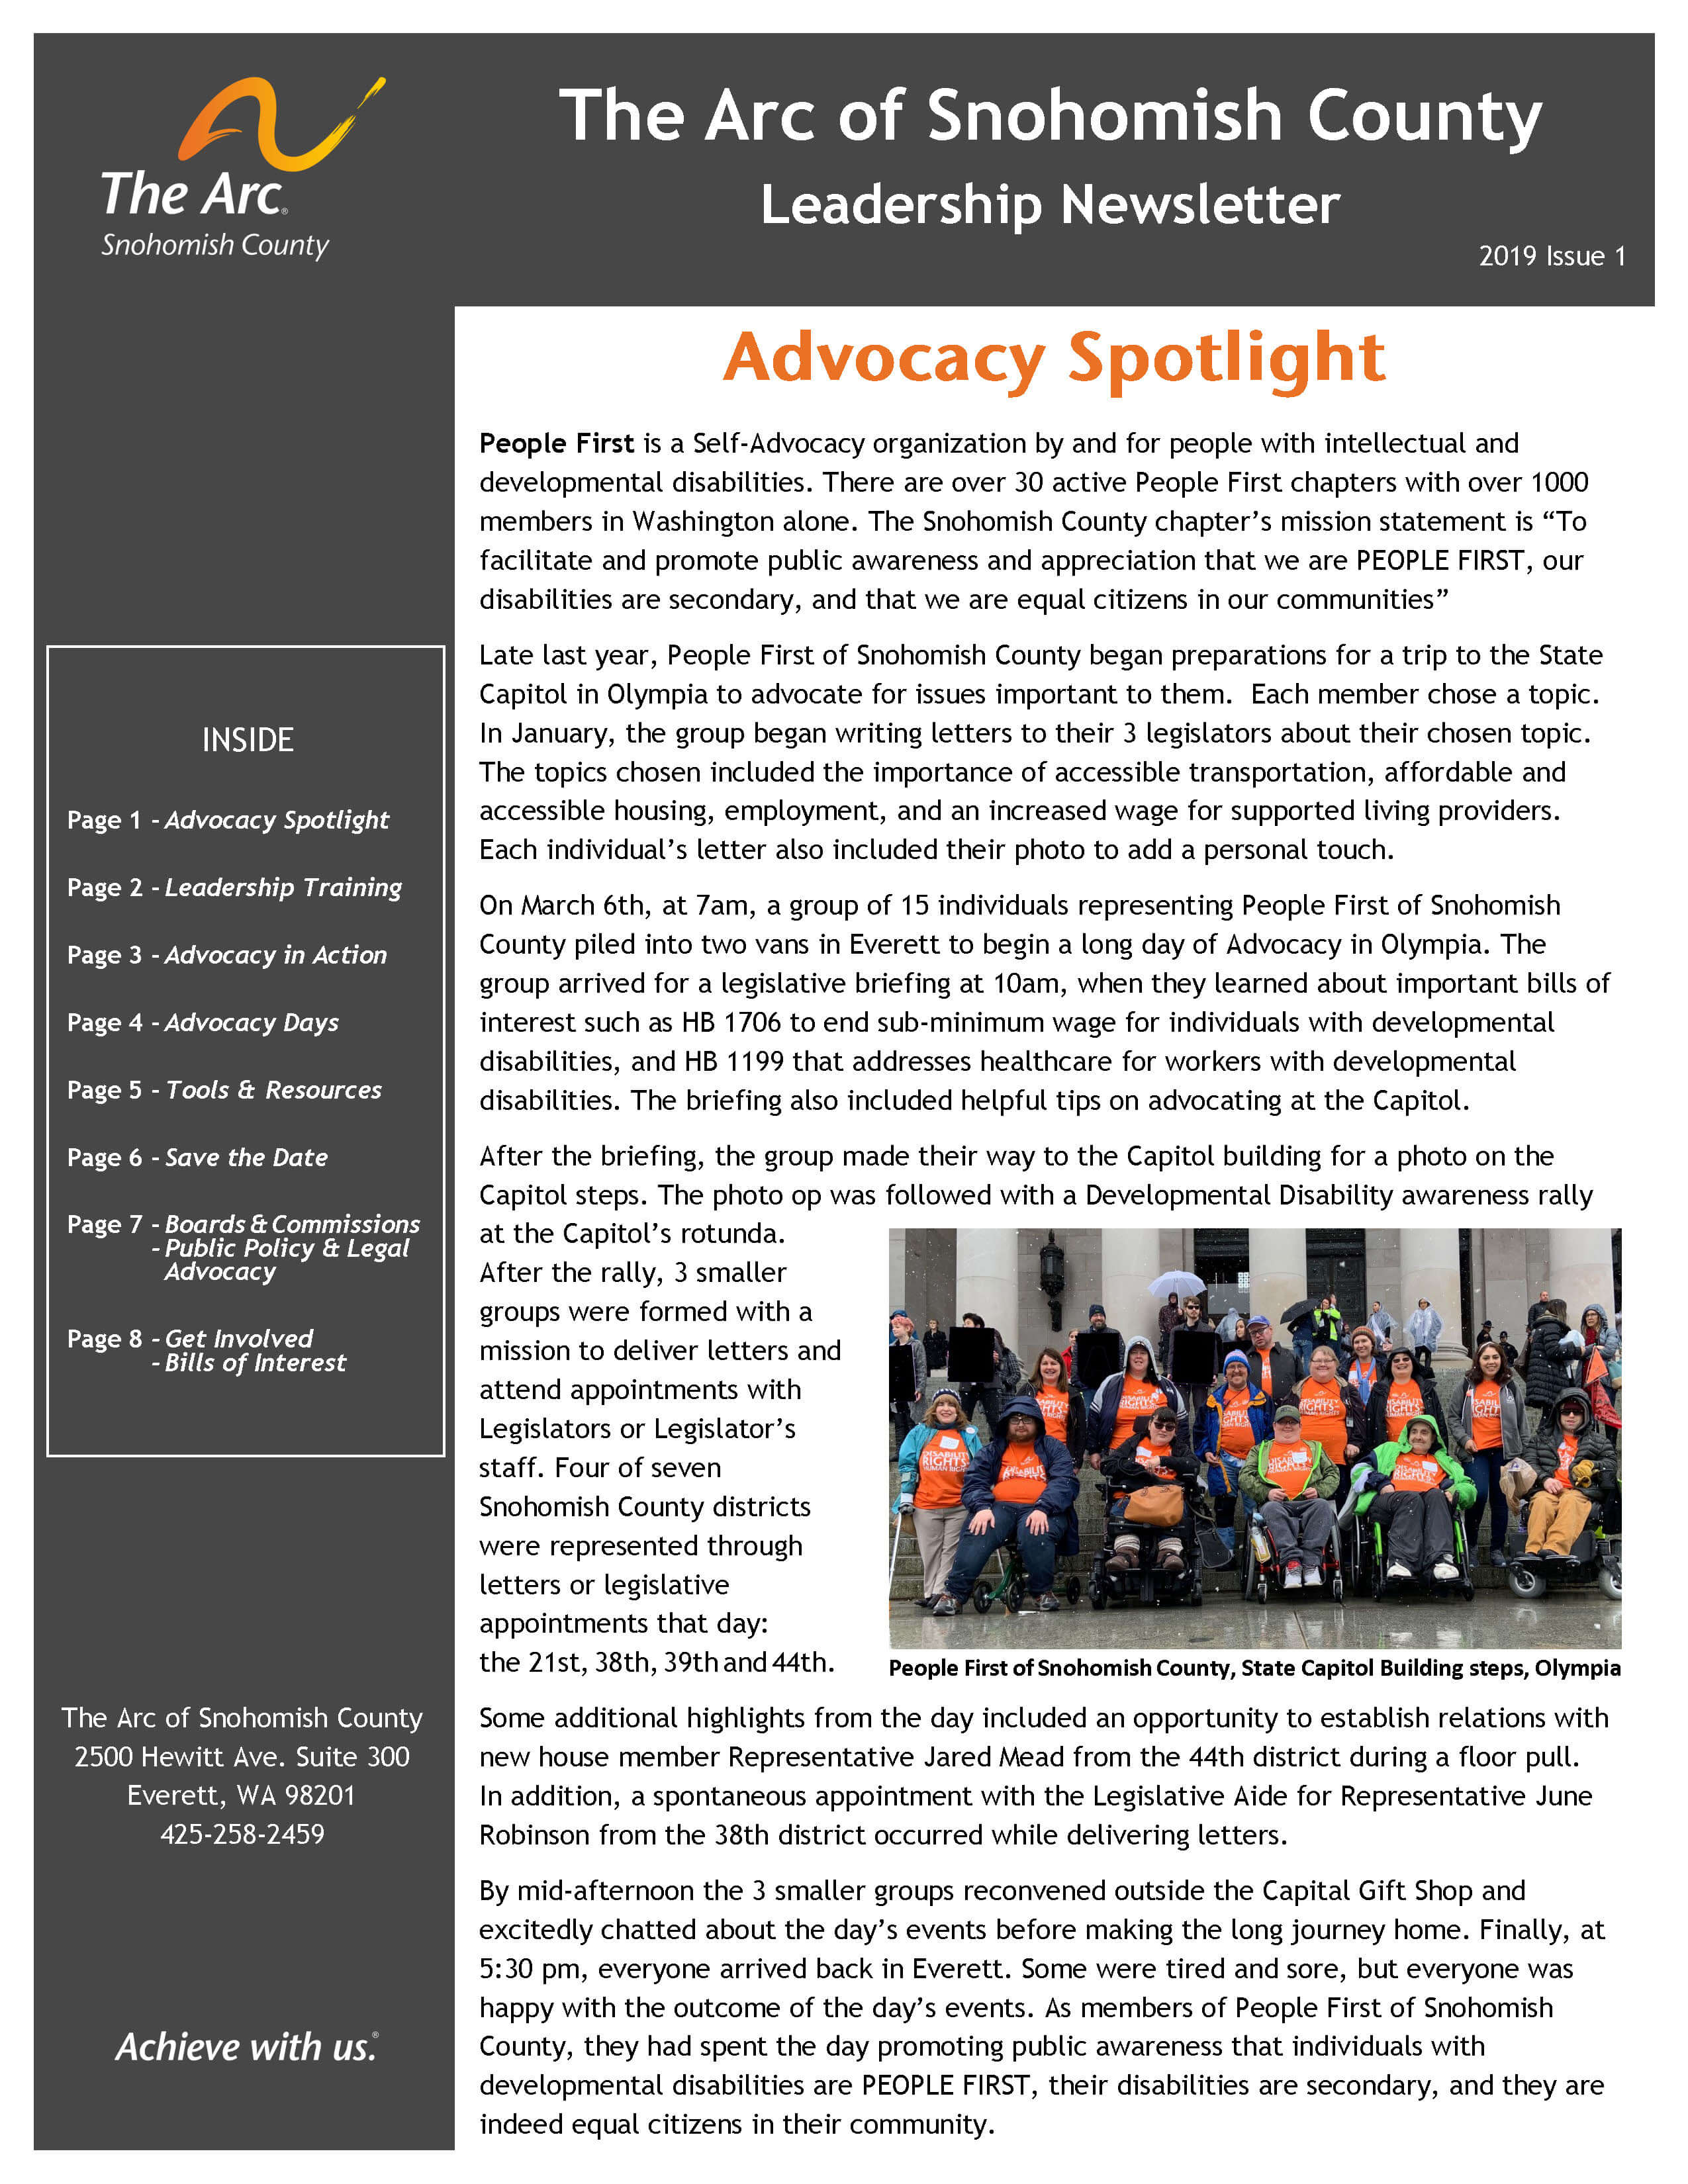 LeadershipNewsletter2019 Issue 1 Page 1